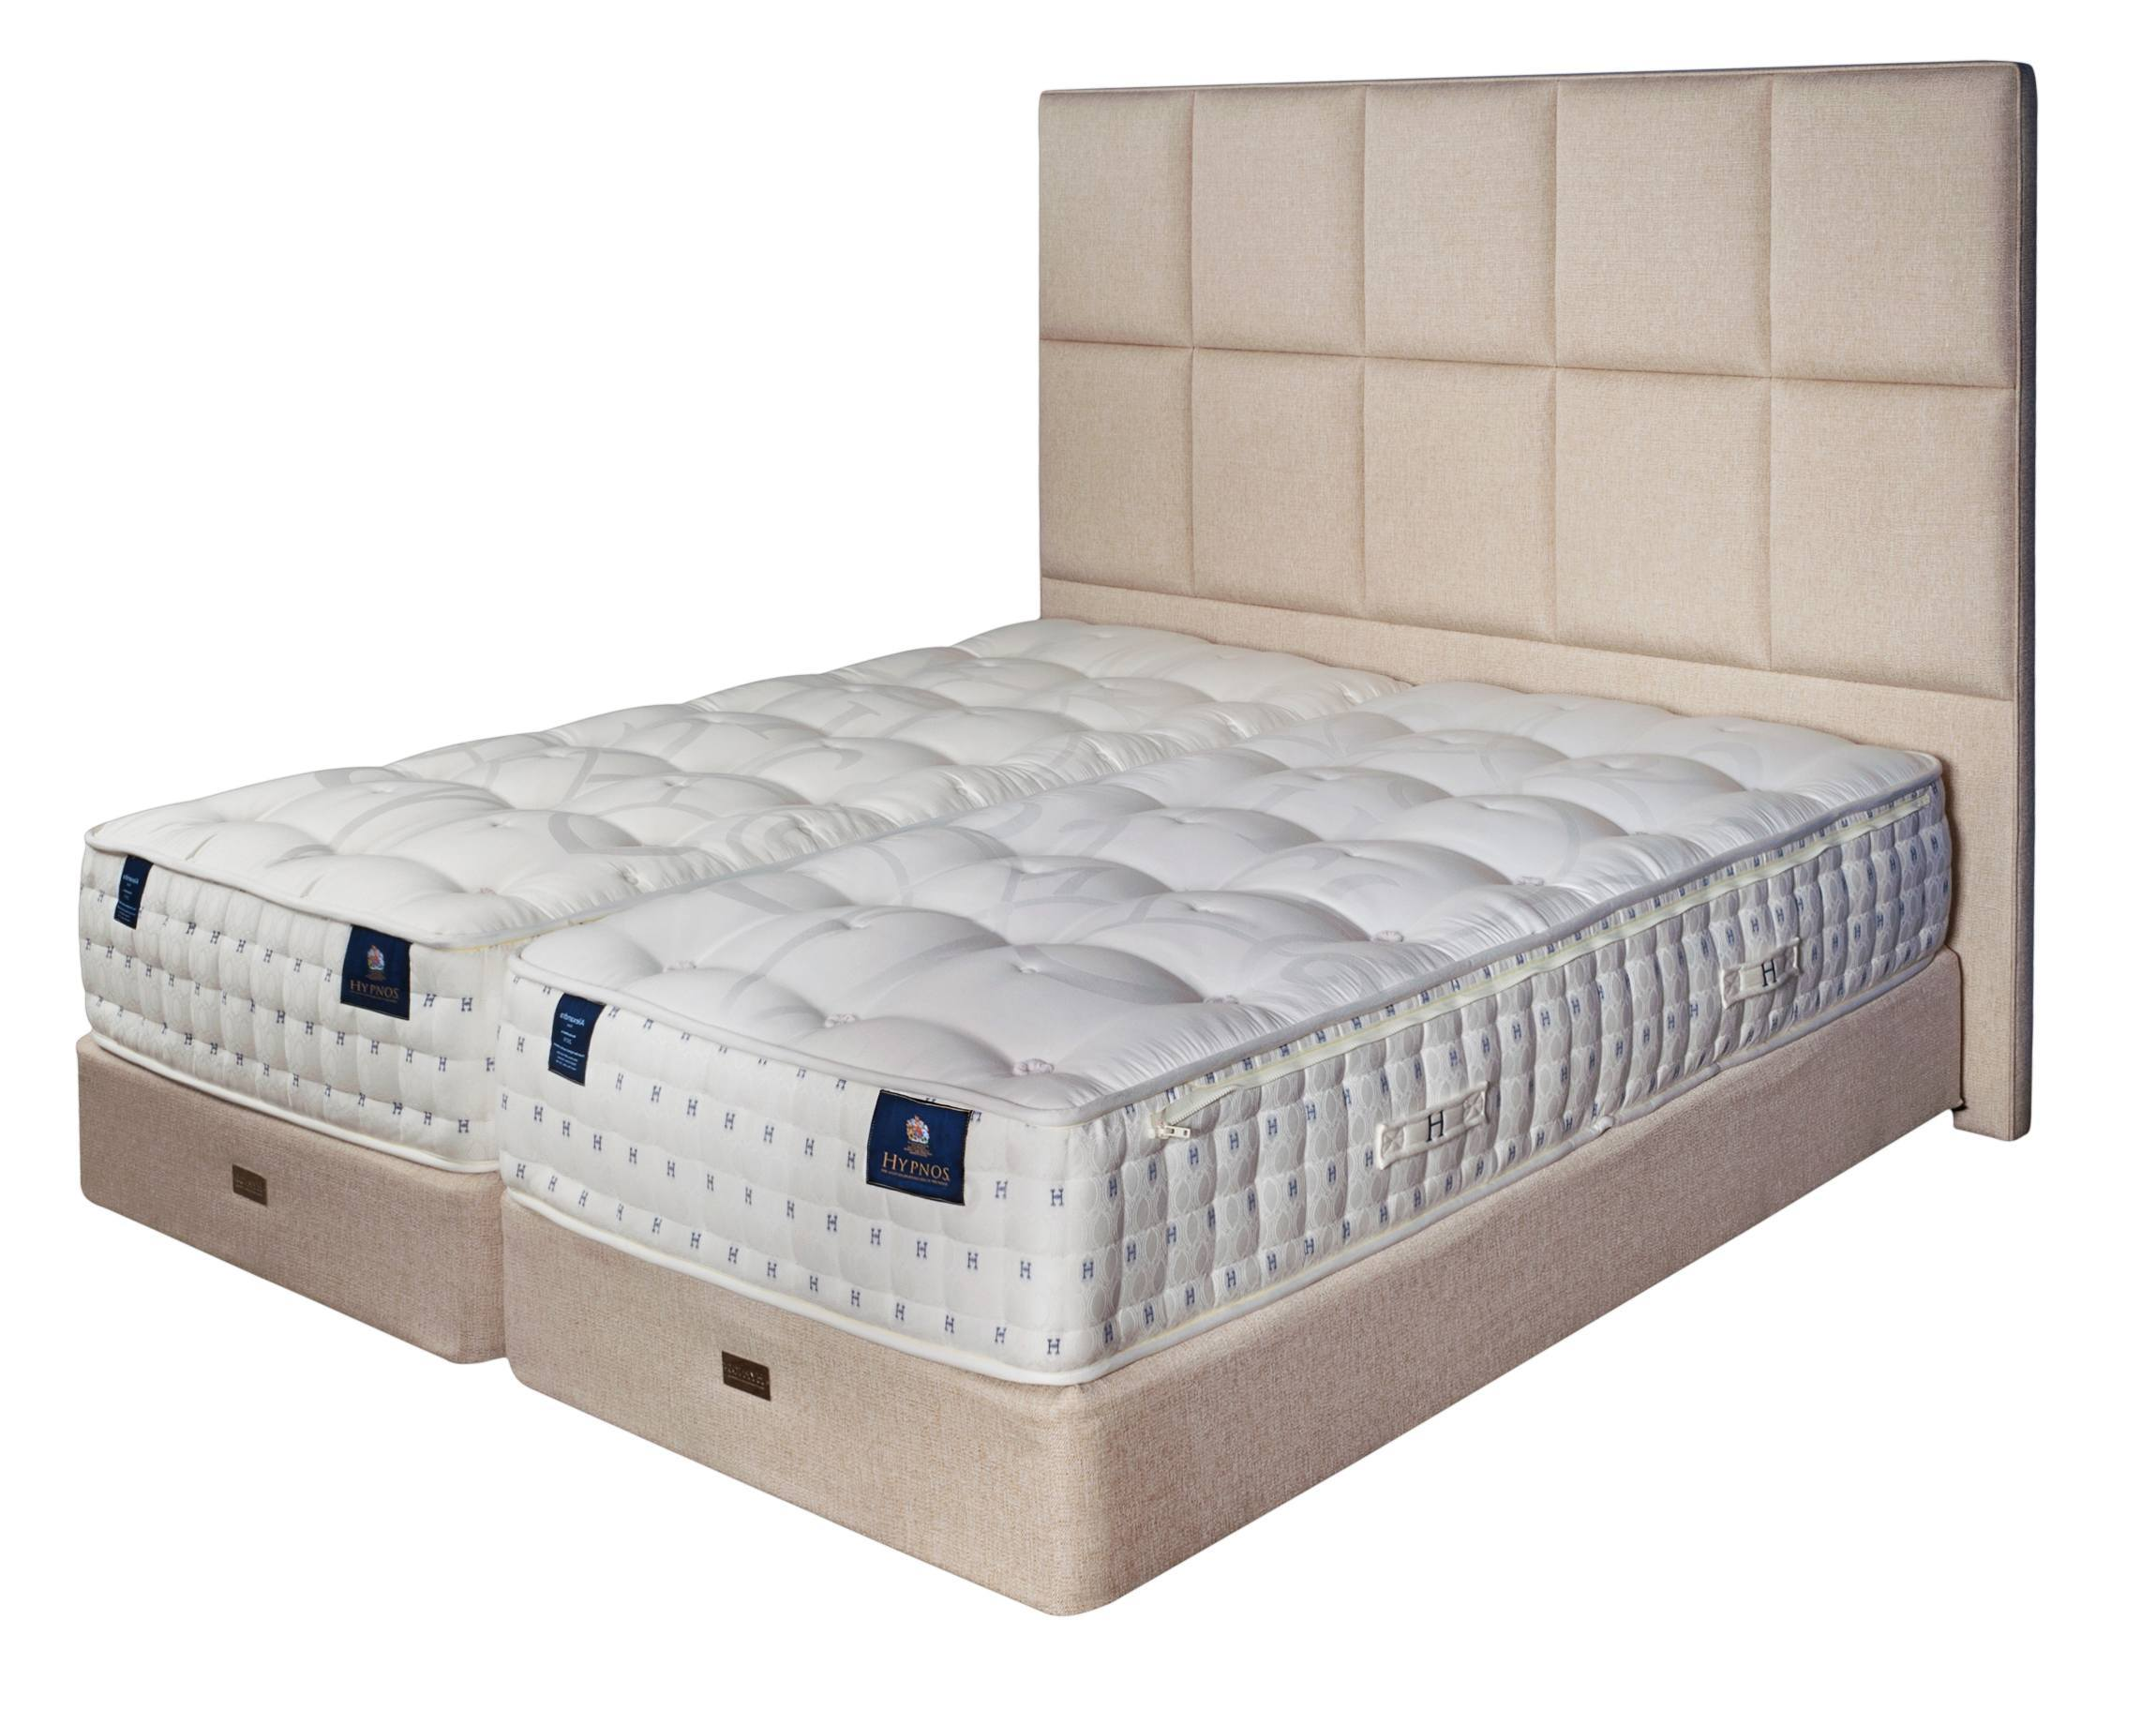 twin hmi odessey pt products item home capitol mattress set sherwood number plush t vandrie bedding